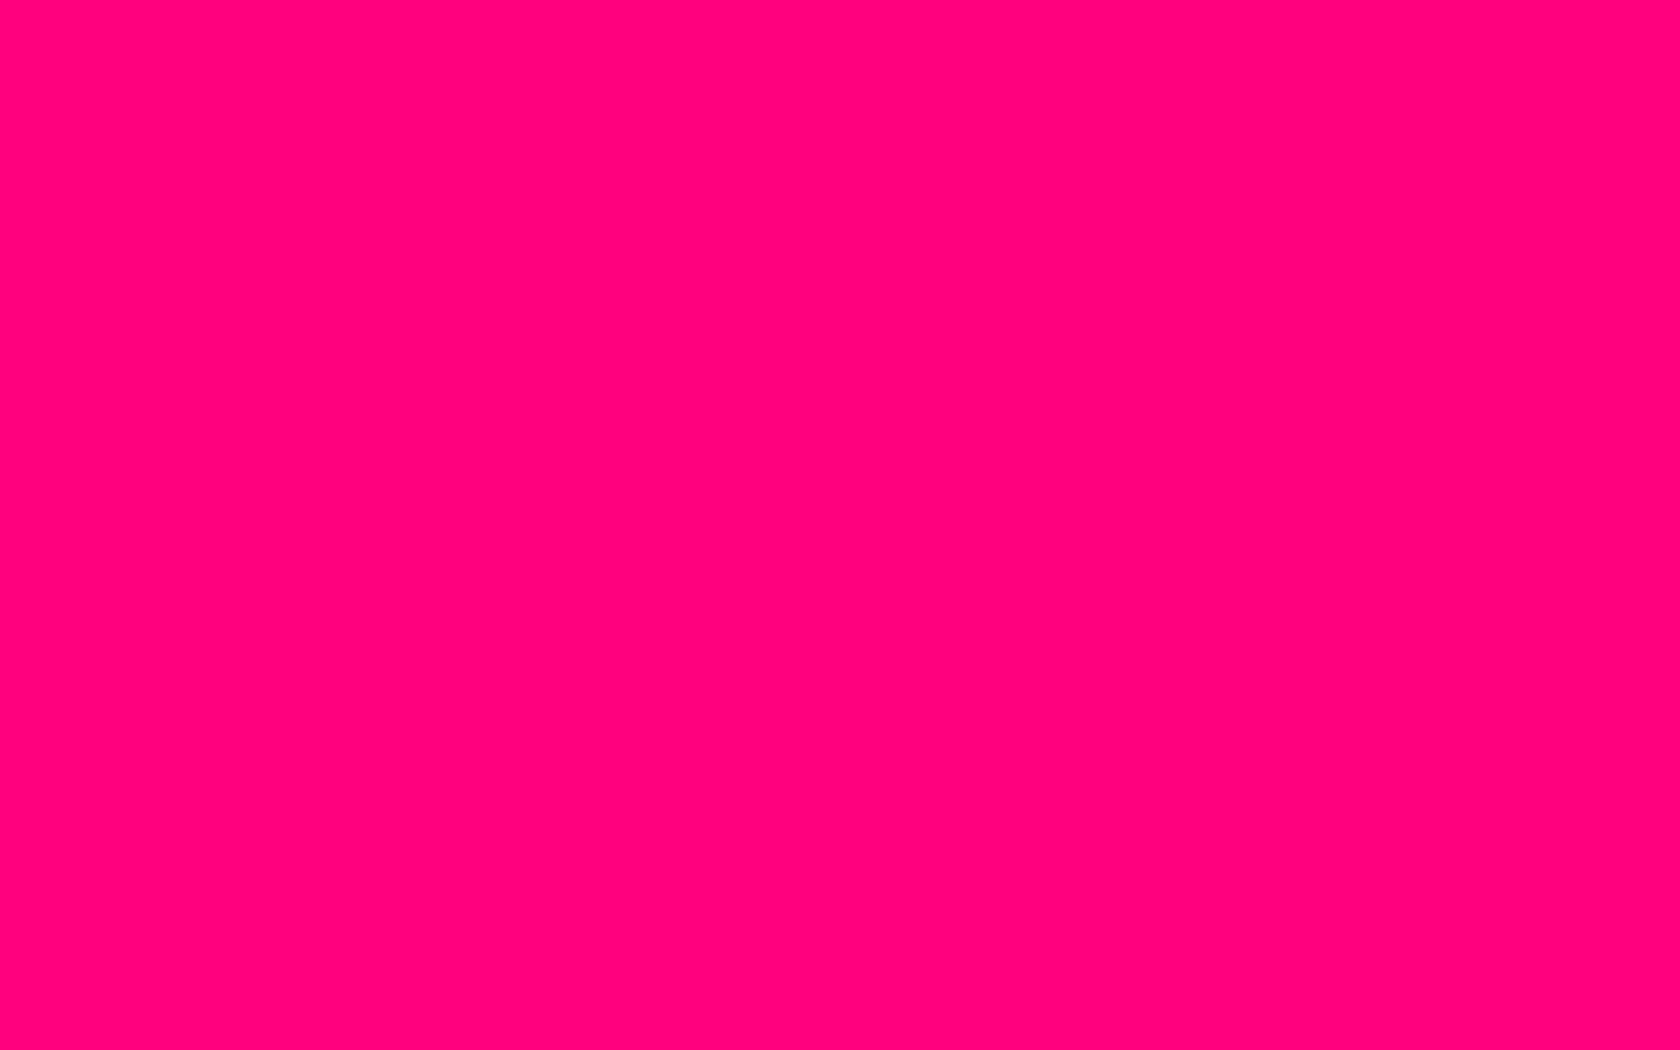 1680x1050 Bright Pink Solid Color Background